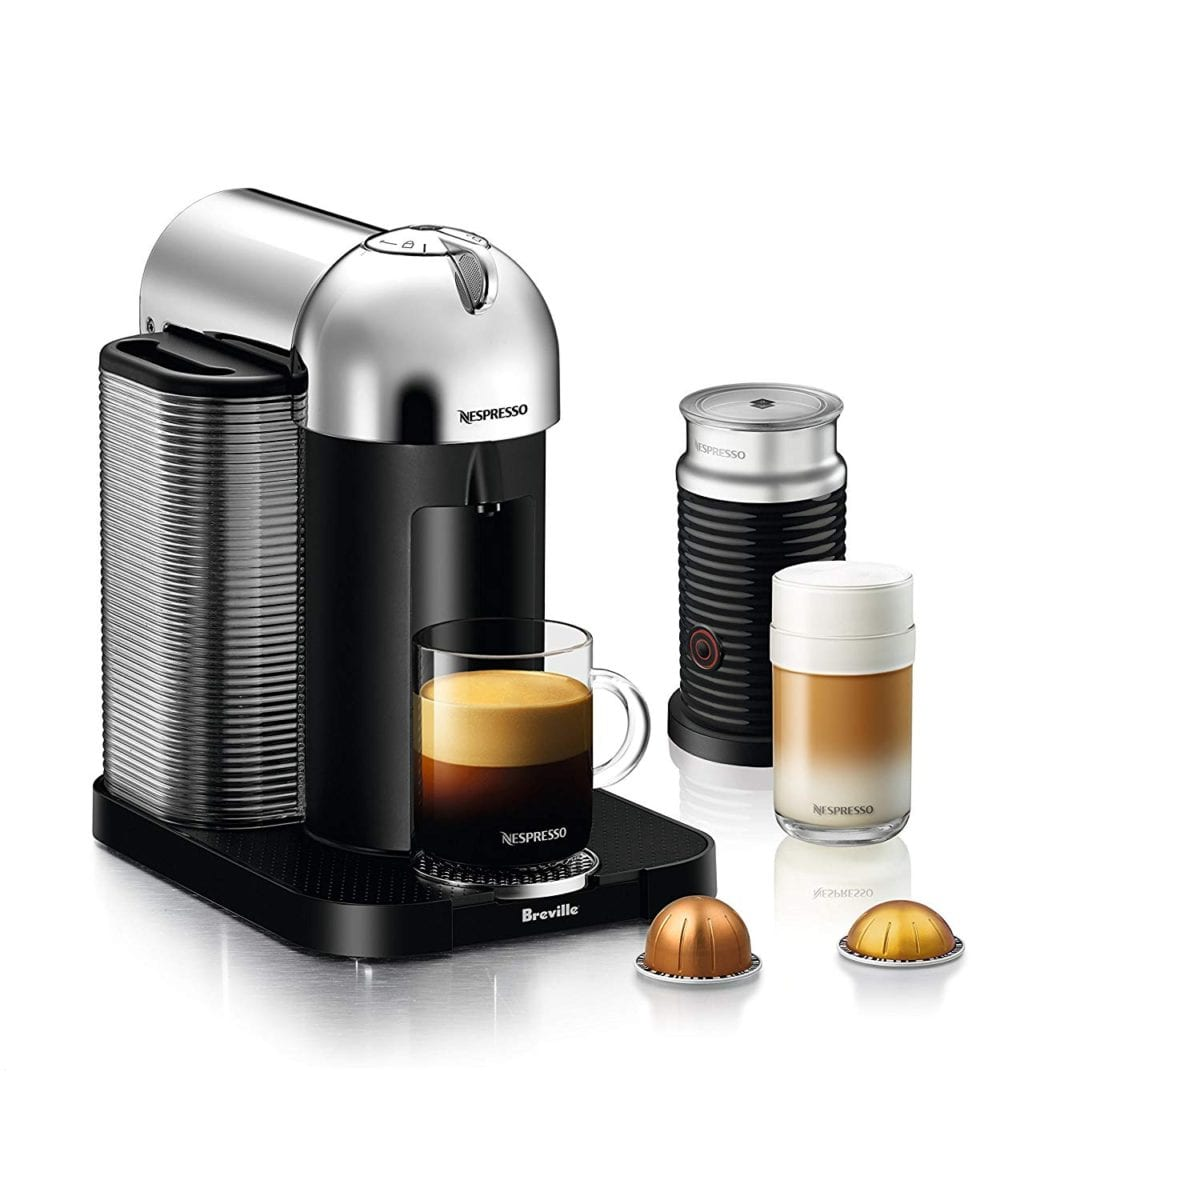 Breeville Espresso Machine gift ideas for entrepreneurs